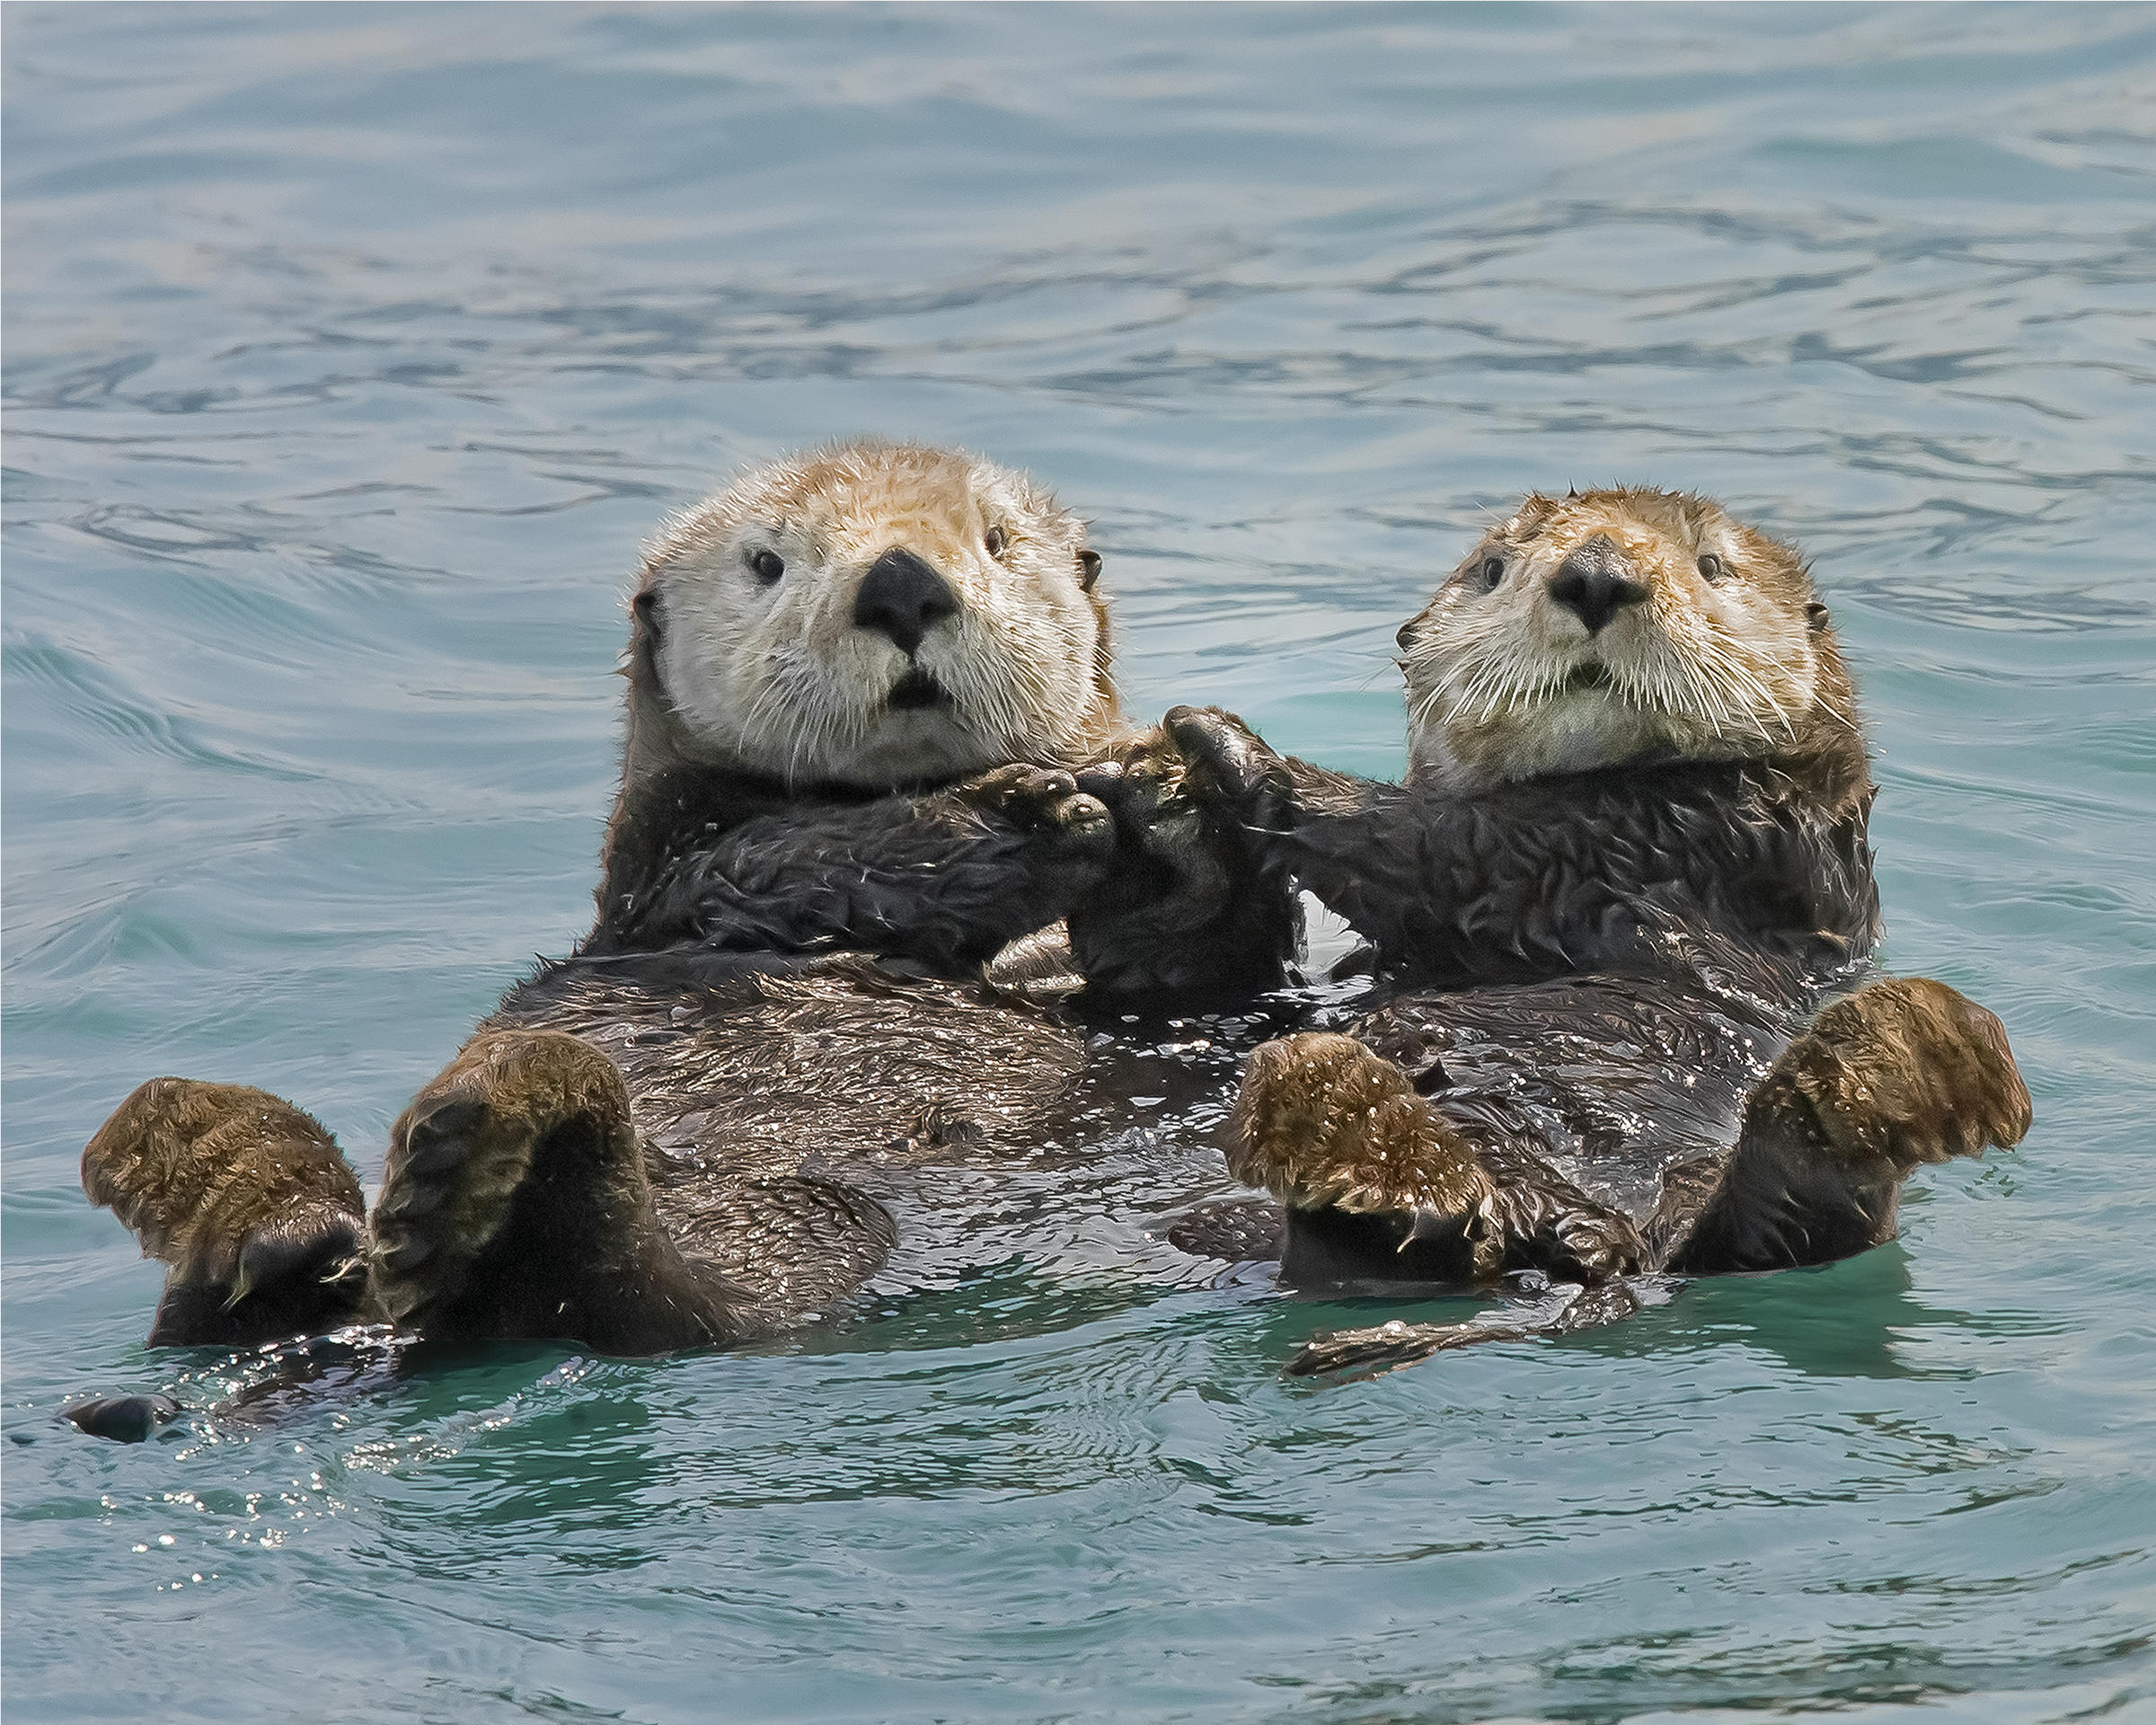 Cute Otter Wallpaper New Book Documents History Of Sea Otters Rhode Island